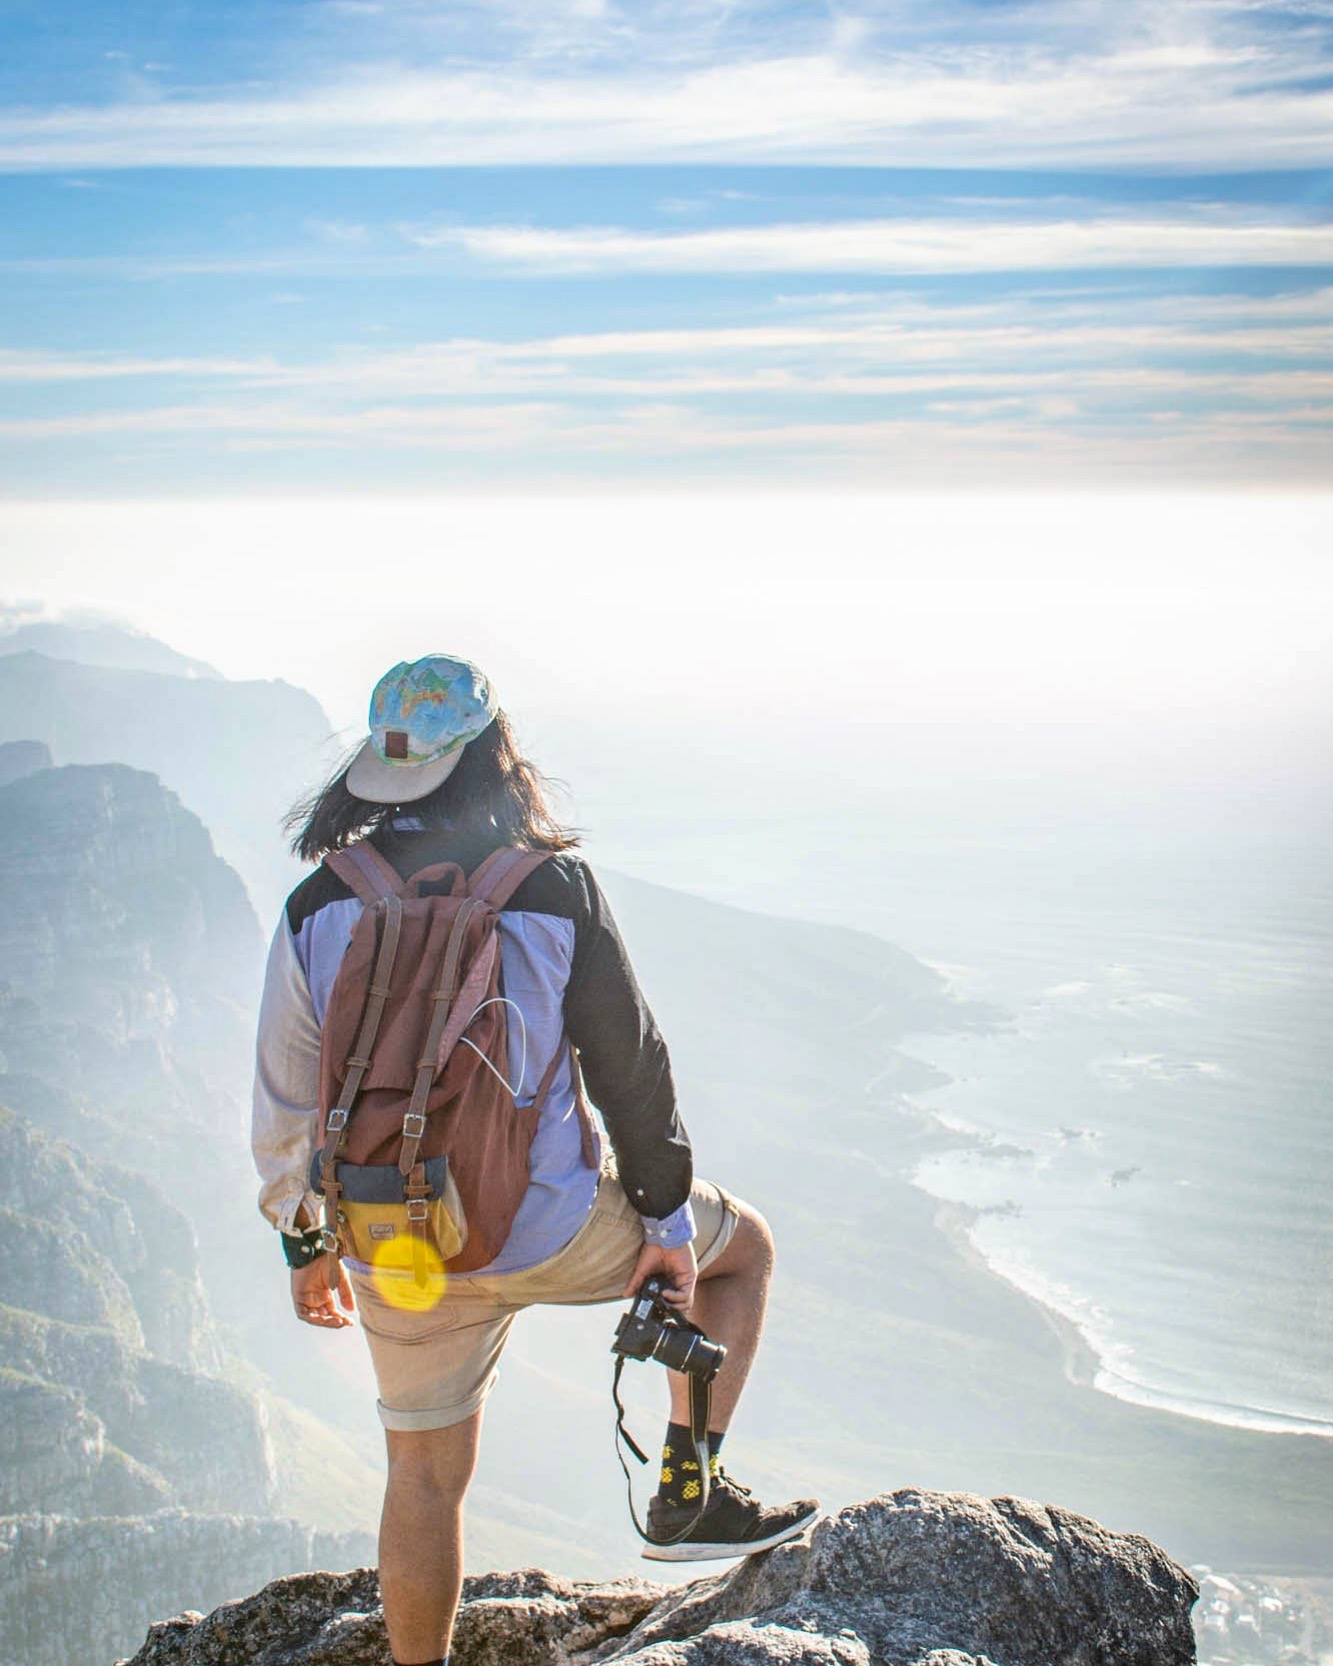 Taking in the view from the top of South Africa's Table Mountain. Photo taken by Melanie Van Zyl.